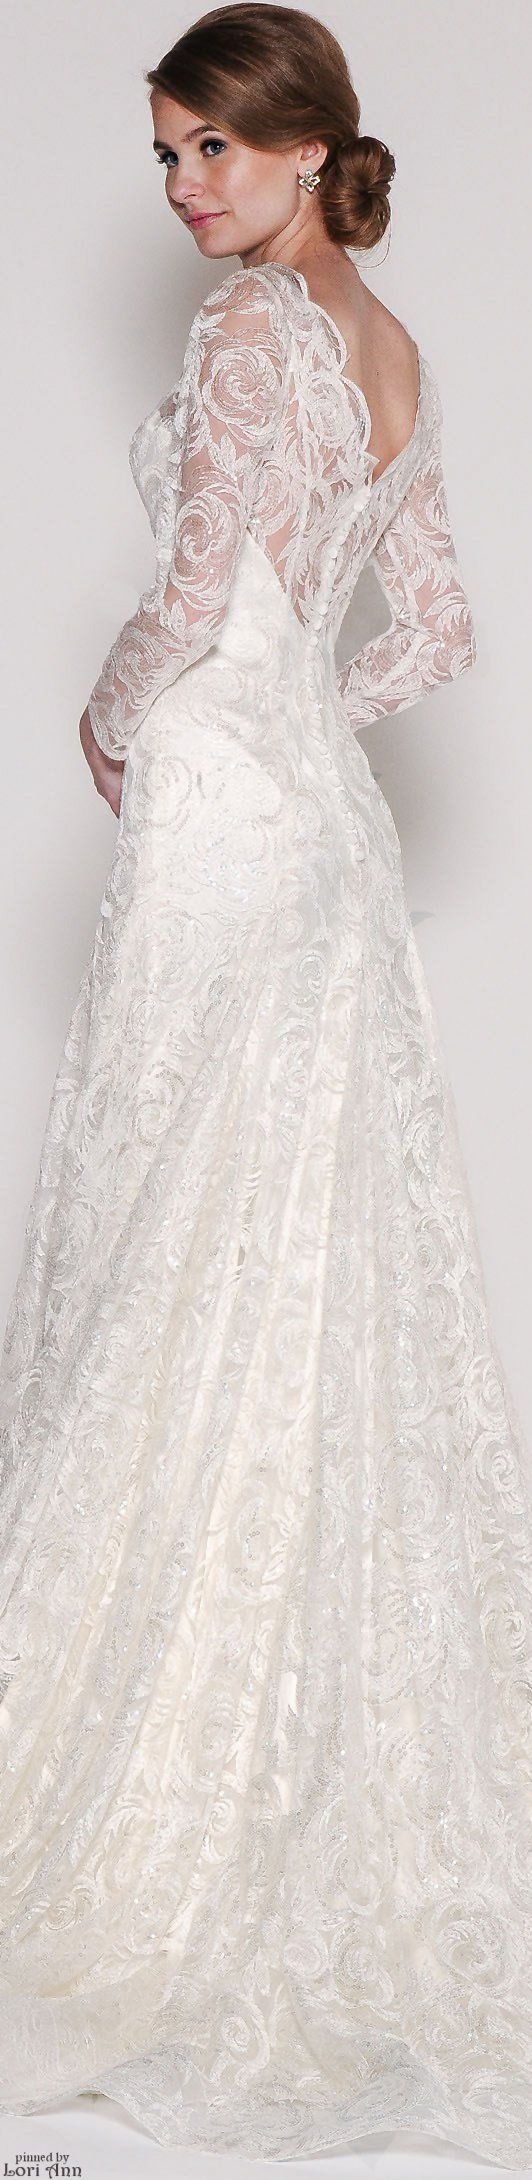 Eugenia Couture #Bridal Spring 2016 #wedding #coupon code nicesup123 gets 25% off at  Provestra.com